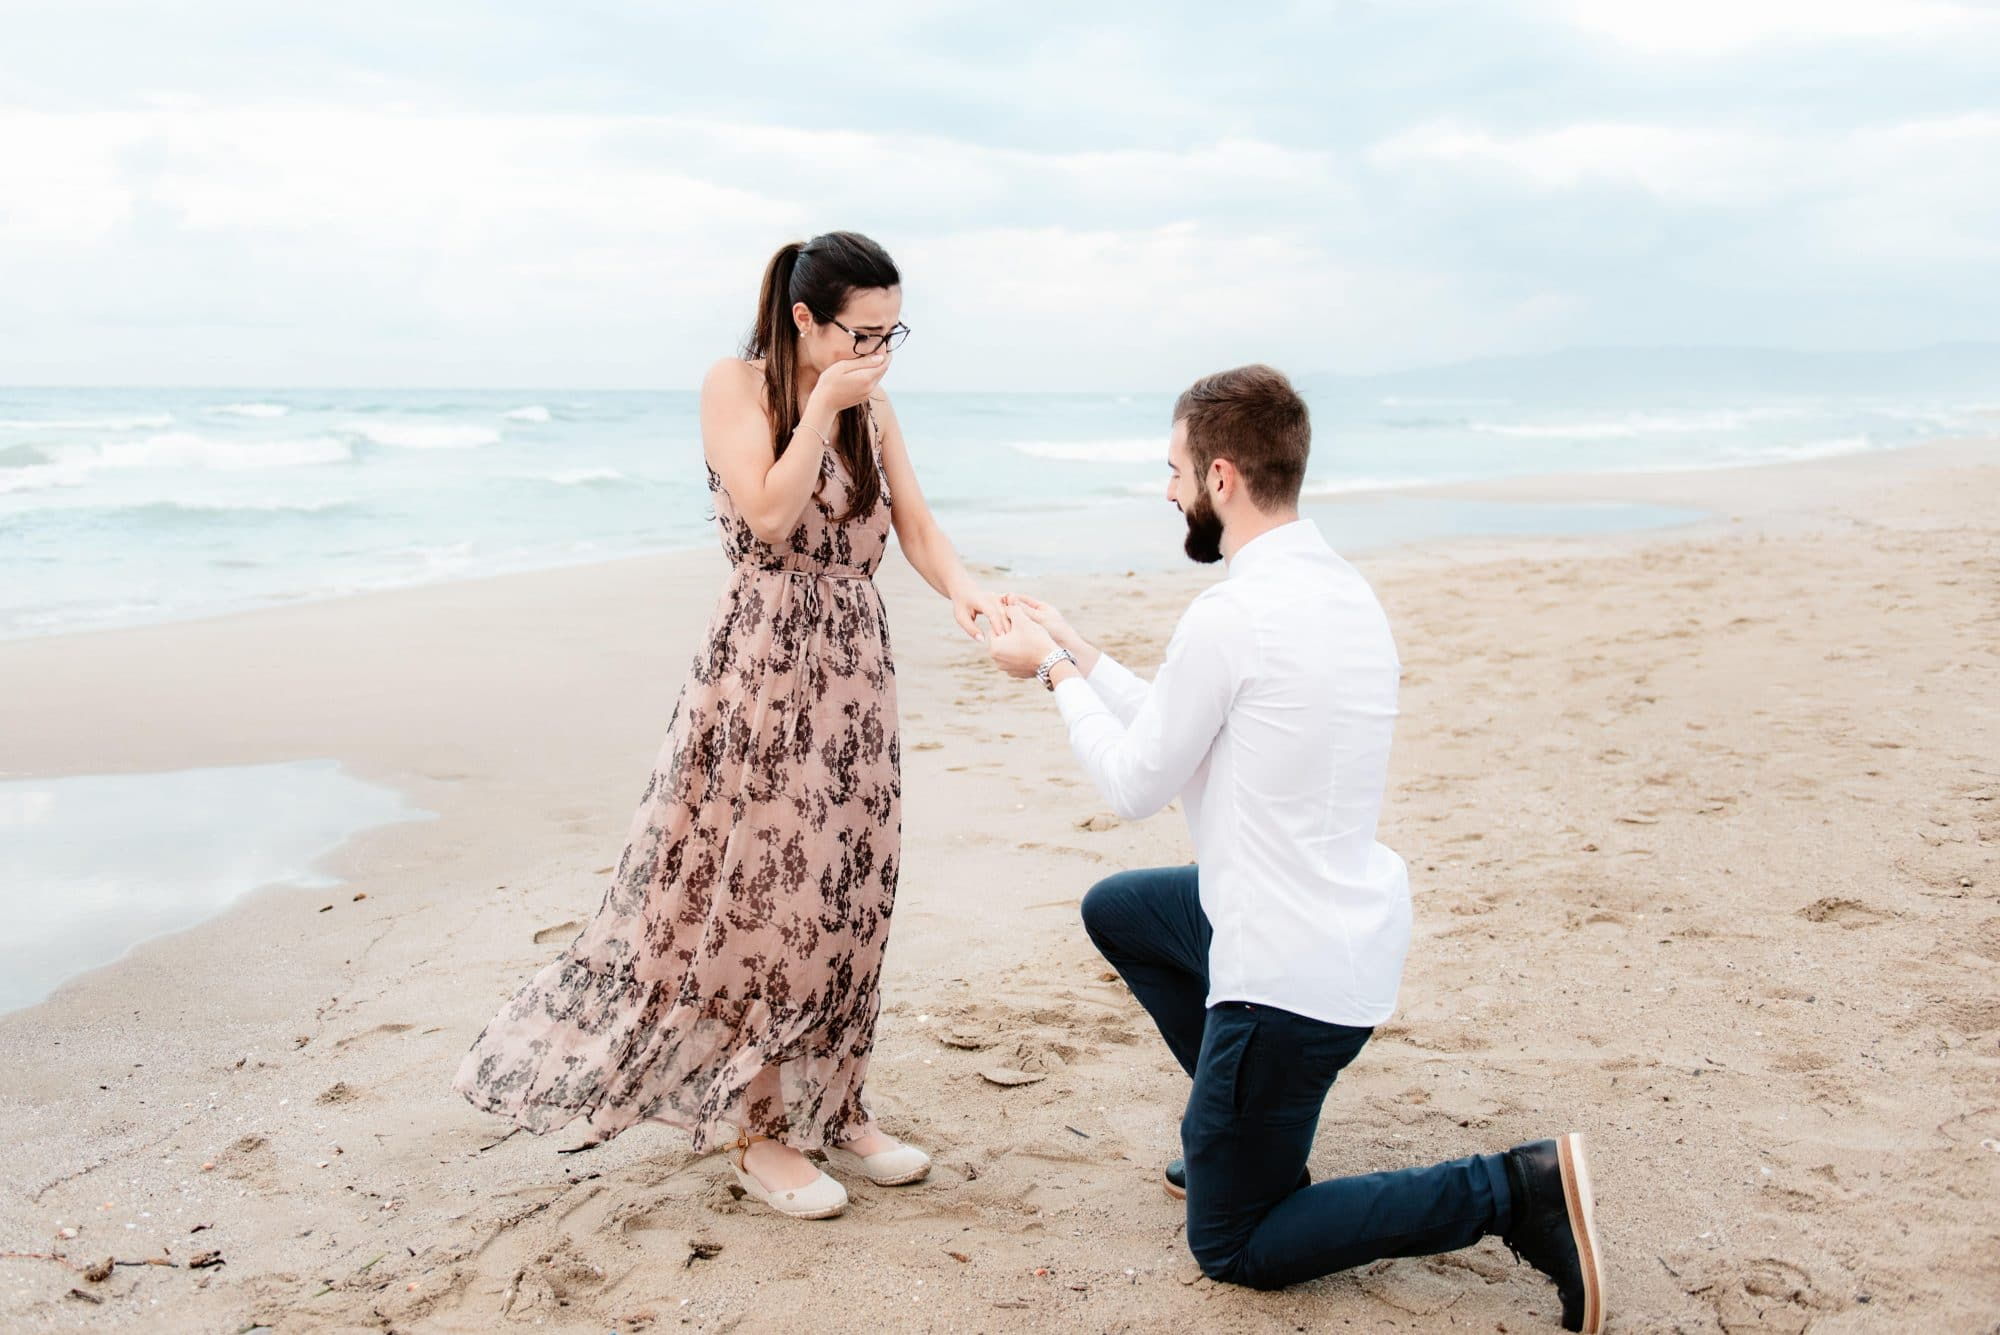 Wedding proposal photographer Sardinia